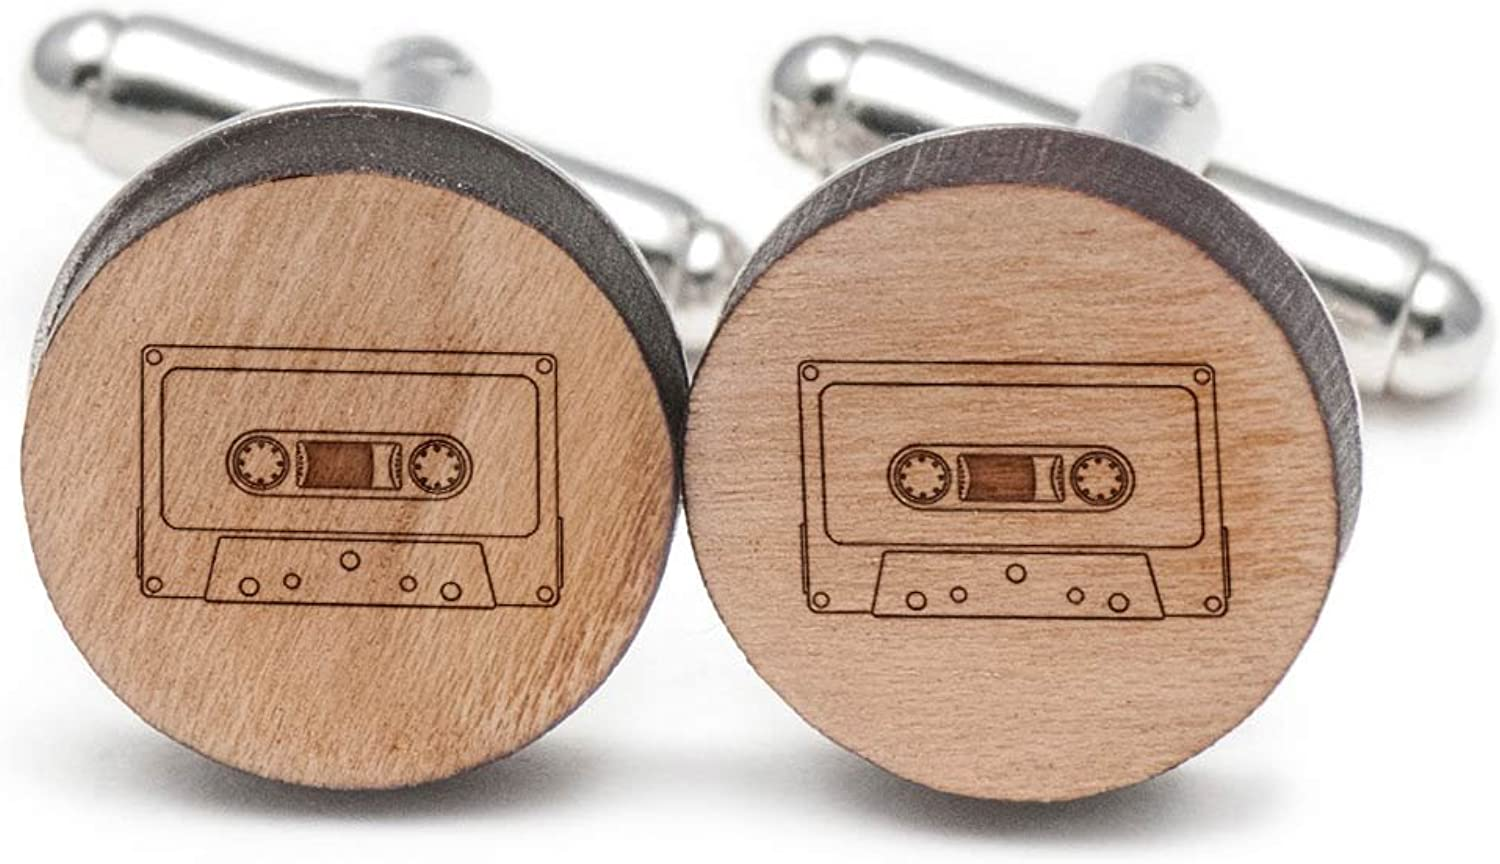 Wooden Accessories Company Tape Cassette Cufflinks, Wood Cufflinks Hand Made in The USA